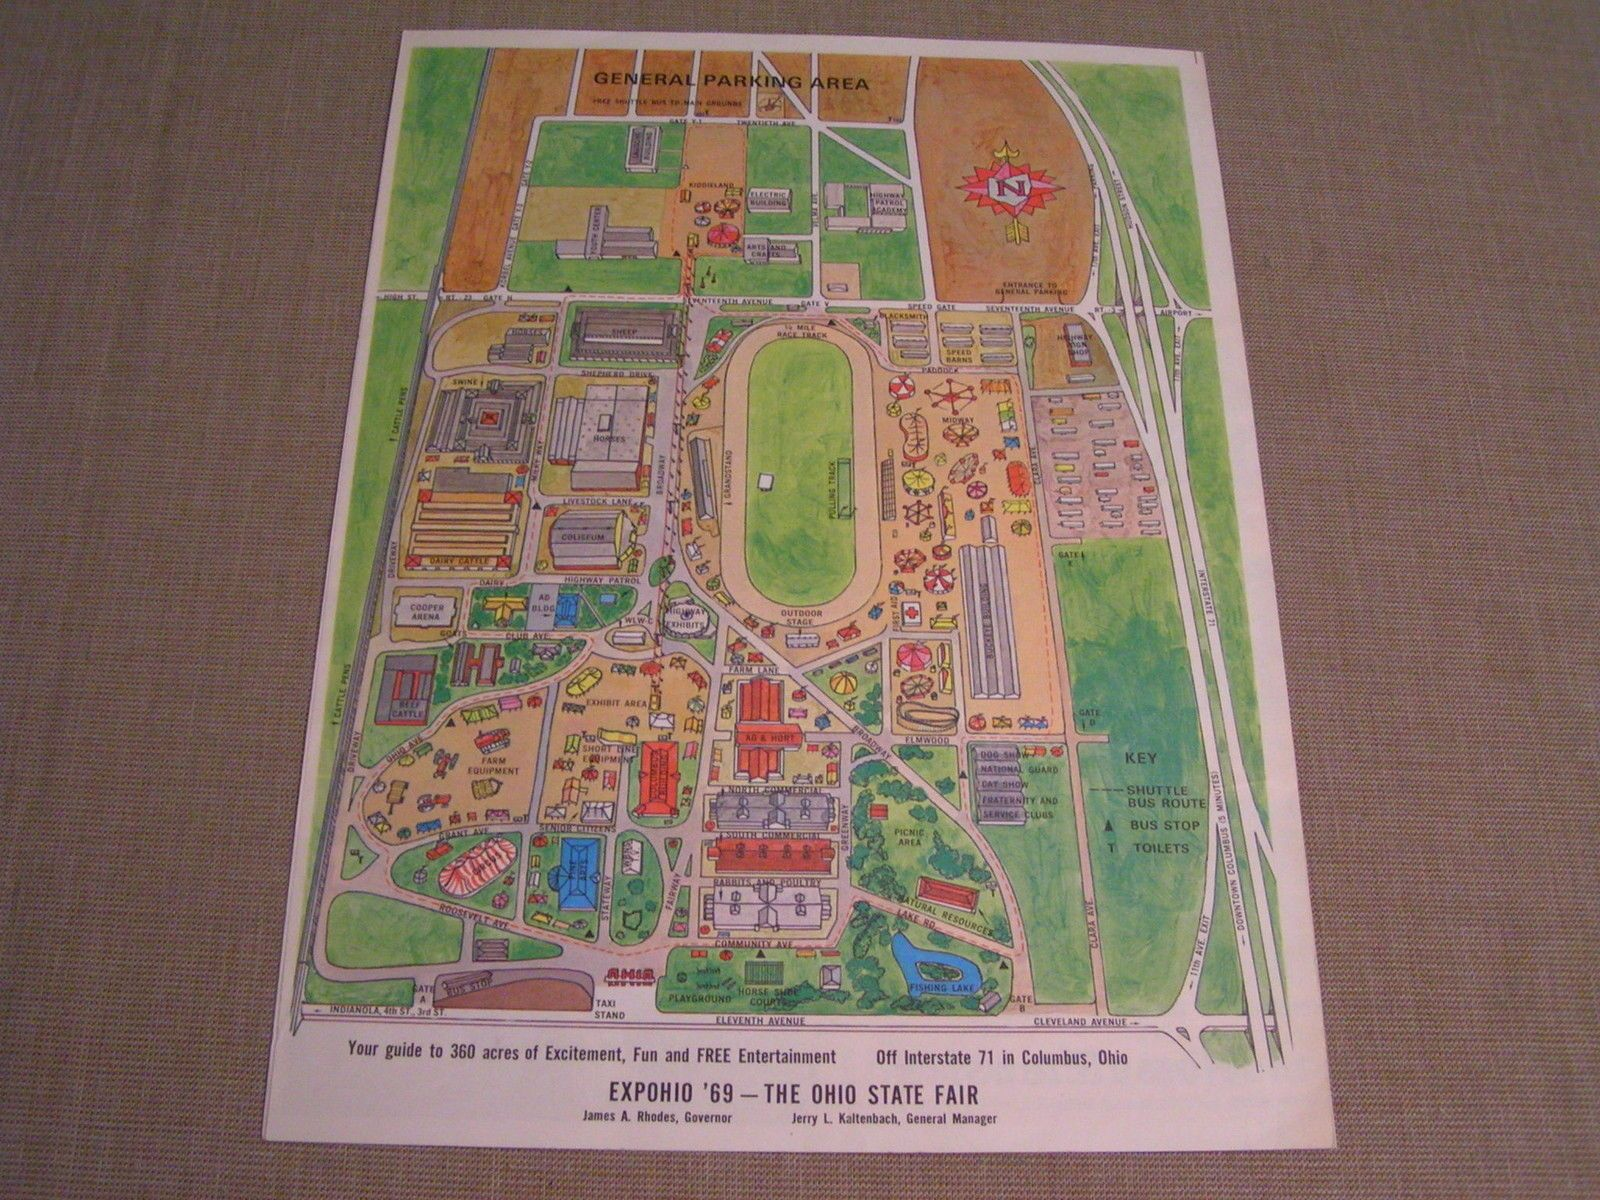 Nice map of the 1969 Fairgrounds. | THE OHIO STATE FAIR | Pinterest Ohio State Fairgrounds Map on ohio state route 40 map, ohio state directions, ohio state expo center map, the ohio state university map, ohio state university marion campus map, ohio state fair map readable, ohio state stadium map, ohio state golf courses map, ohio state building map, ohio state rv parking, ohio state car show, ohio state sponsors, ohio state google map, ohio state fair aerial view, ohio state medical center map, ohio state board, ohio state road map, ohio state legislative districts map, ohio zoo map, celeste center map,